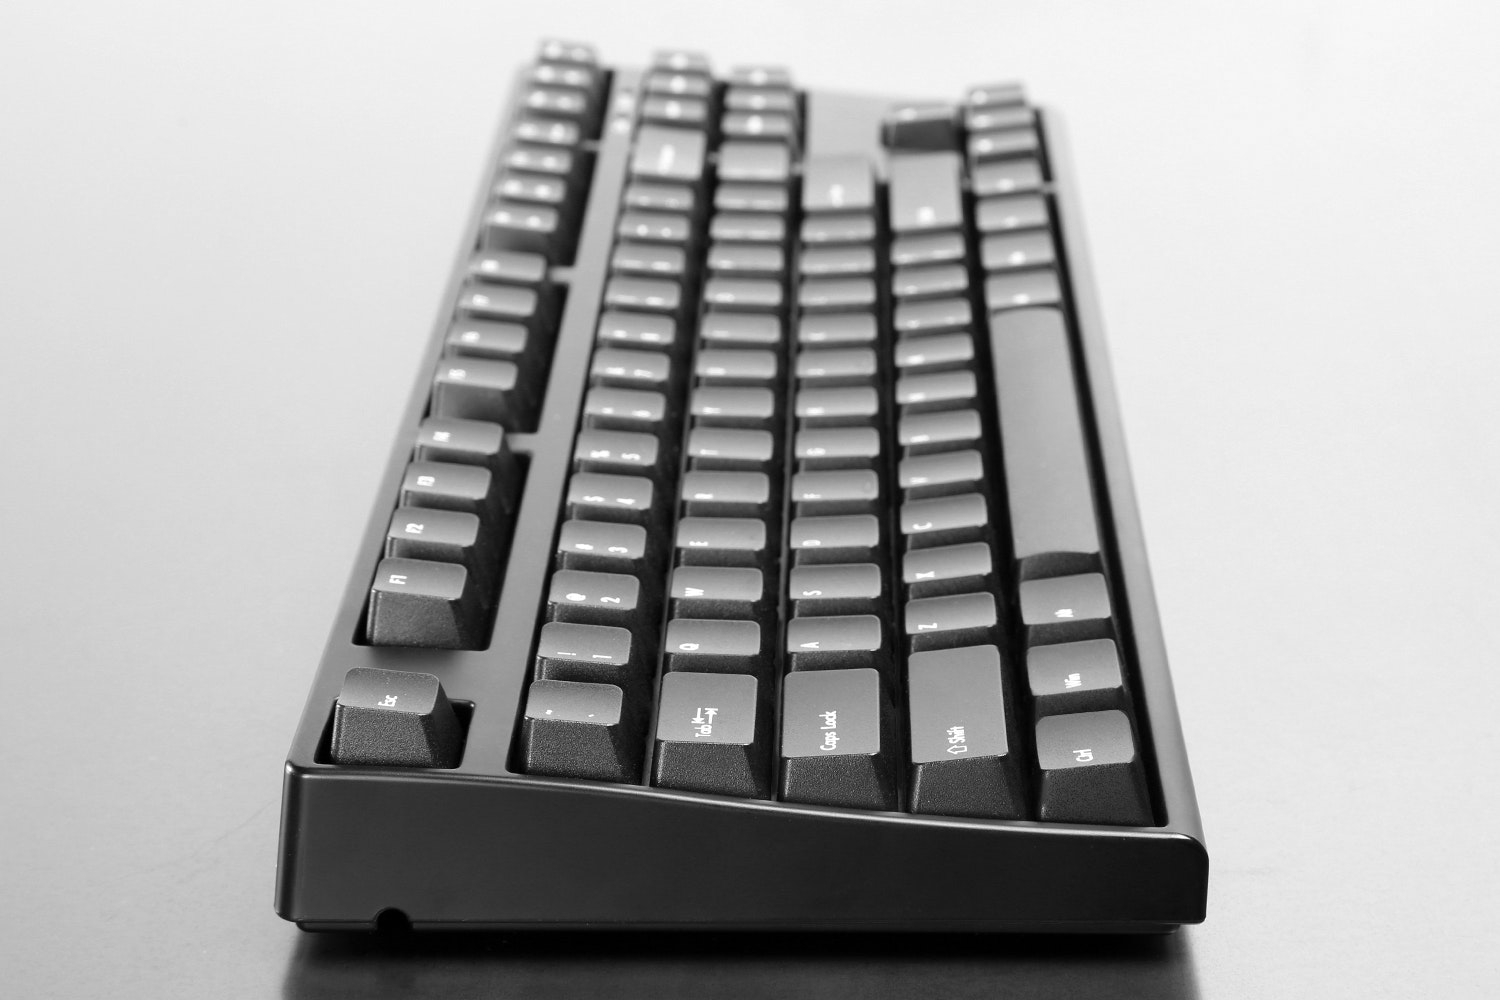 KB Paradise V80 ALPS Mechanical Keyboard